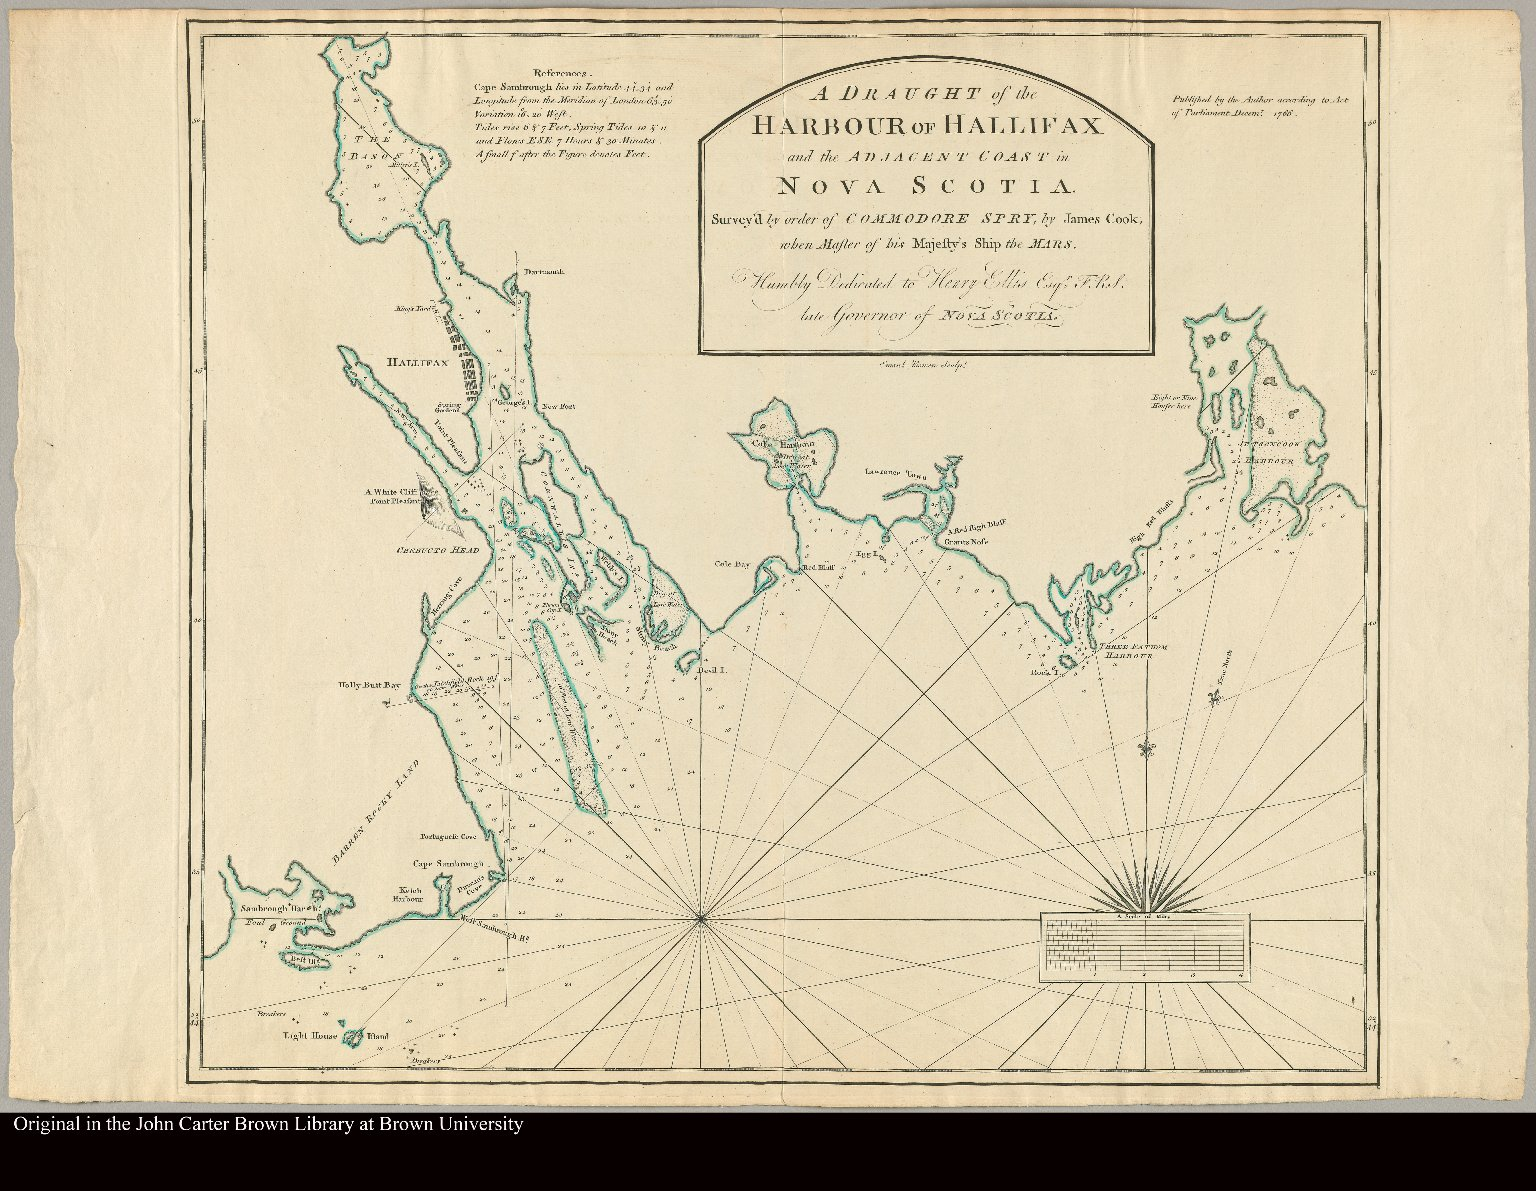 A draught of the Harbour of Hallifax and the adjacent coast in Nova Scotia survey'd by order of Commodore Spry by James Cook, when master of his majesty's ship the Mars